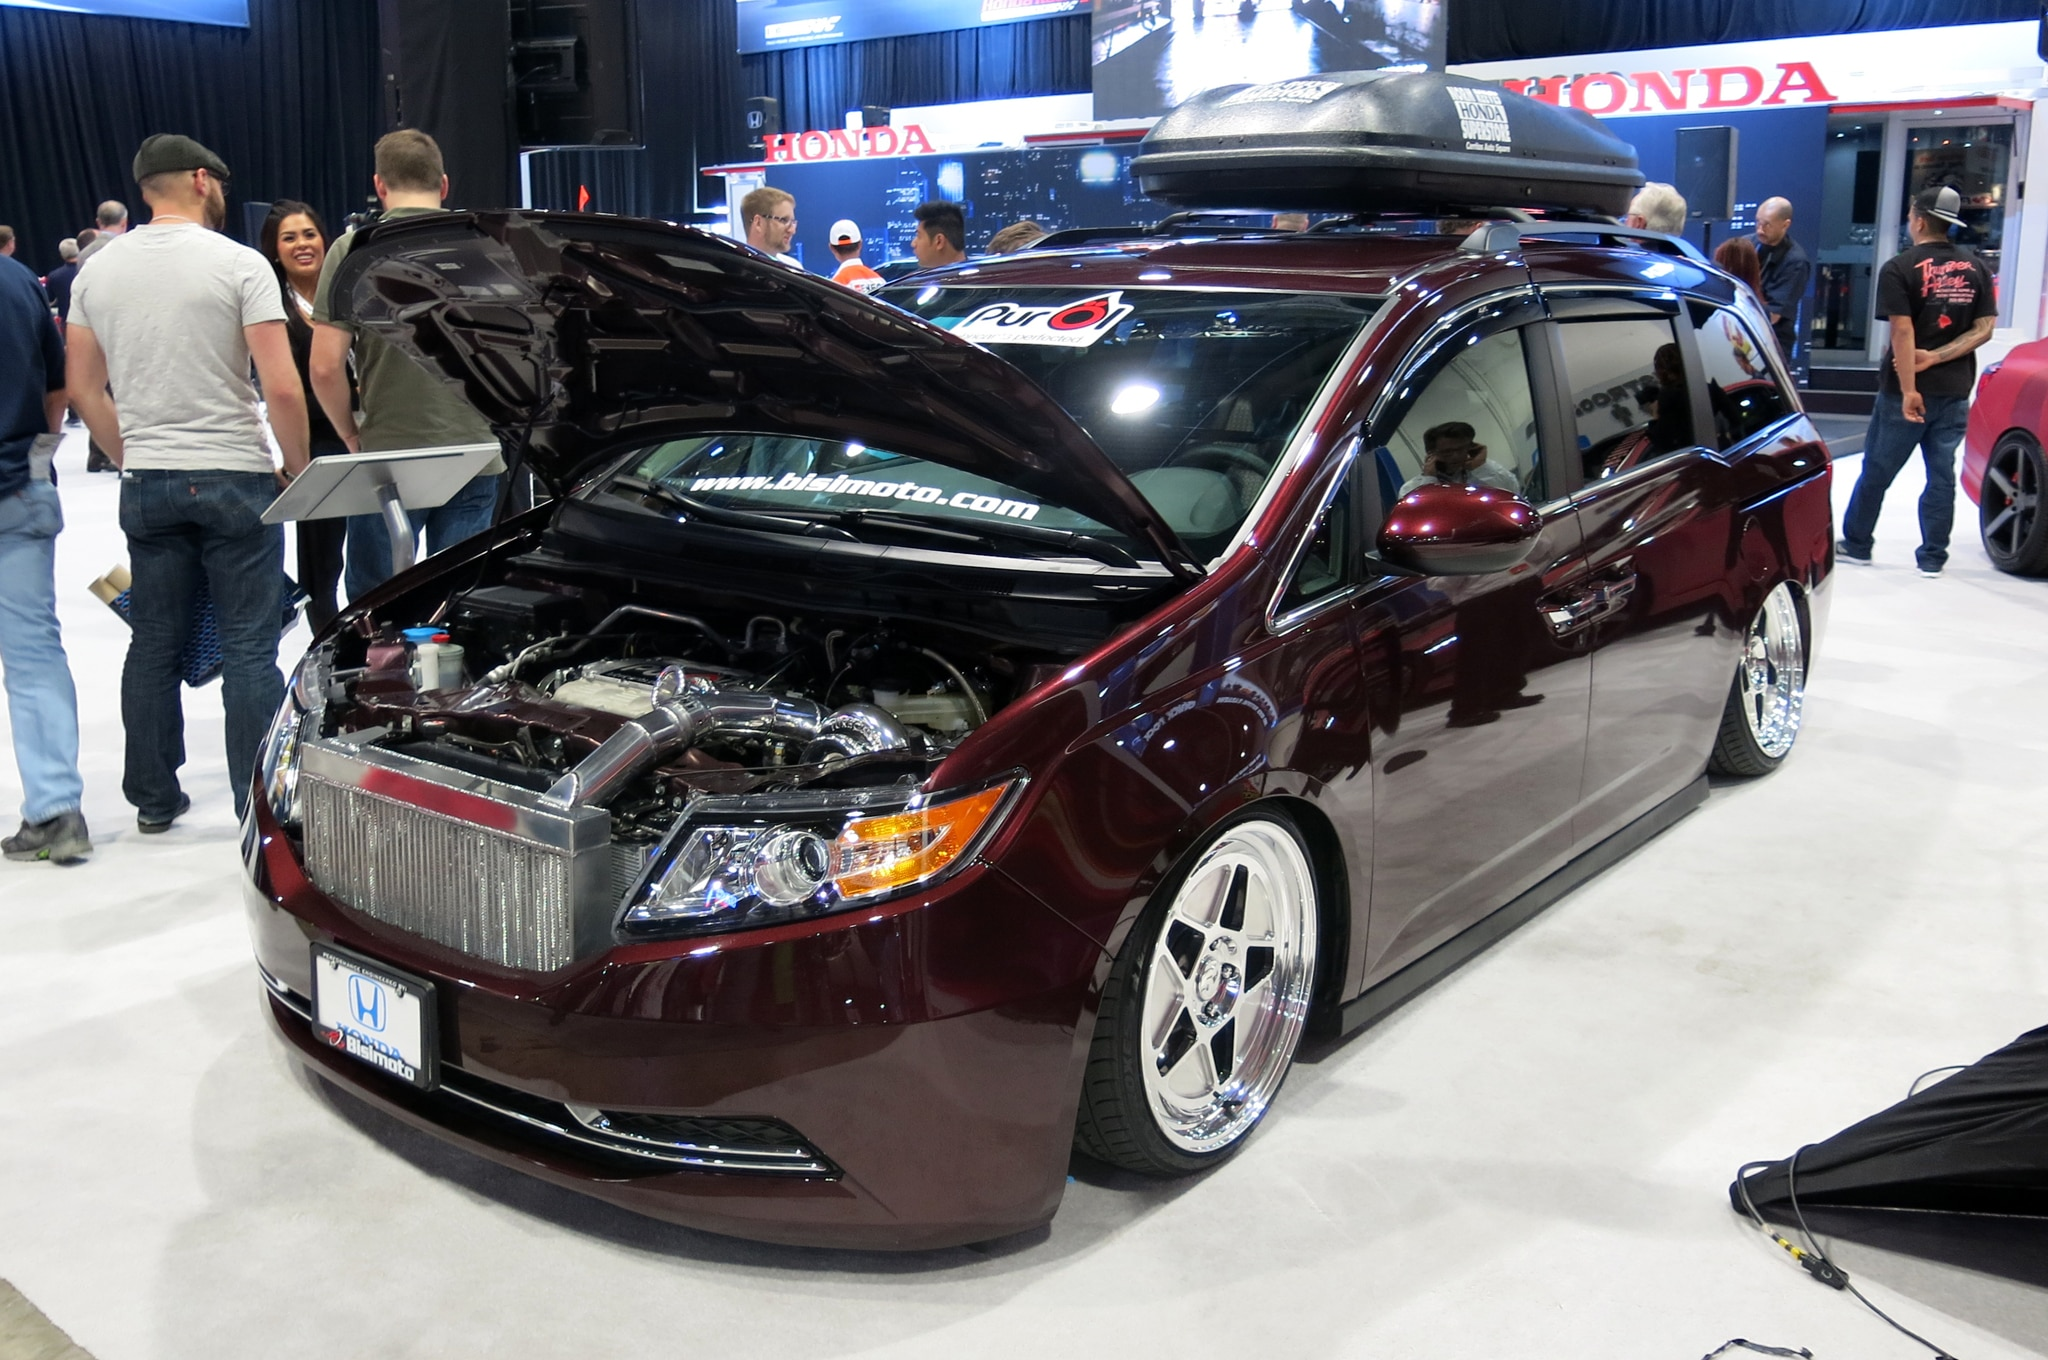 watch this 1029 hp honda odyssey do burnouts. Black Bedroom Furniture Sets. Home Design Ideas